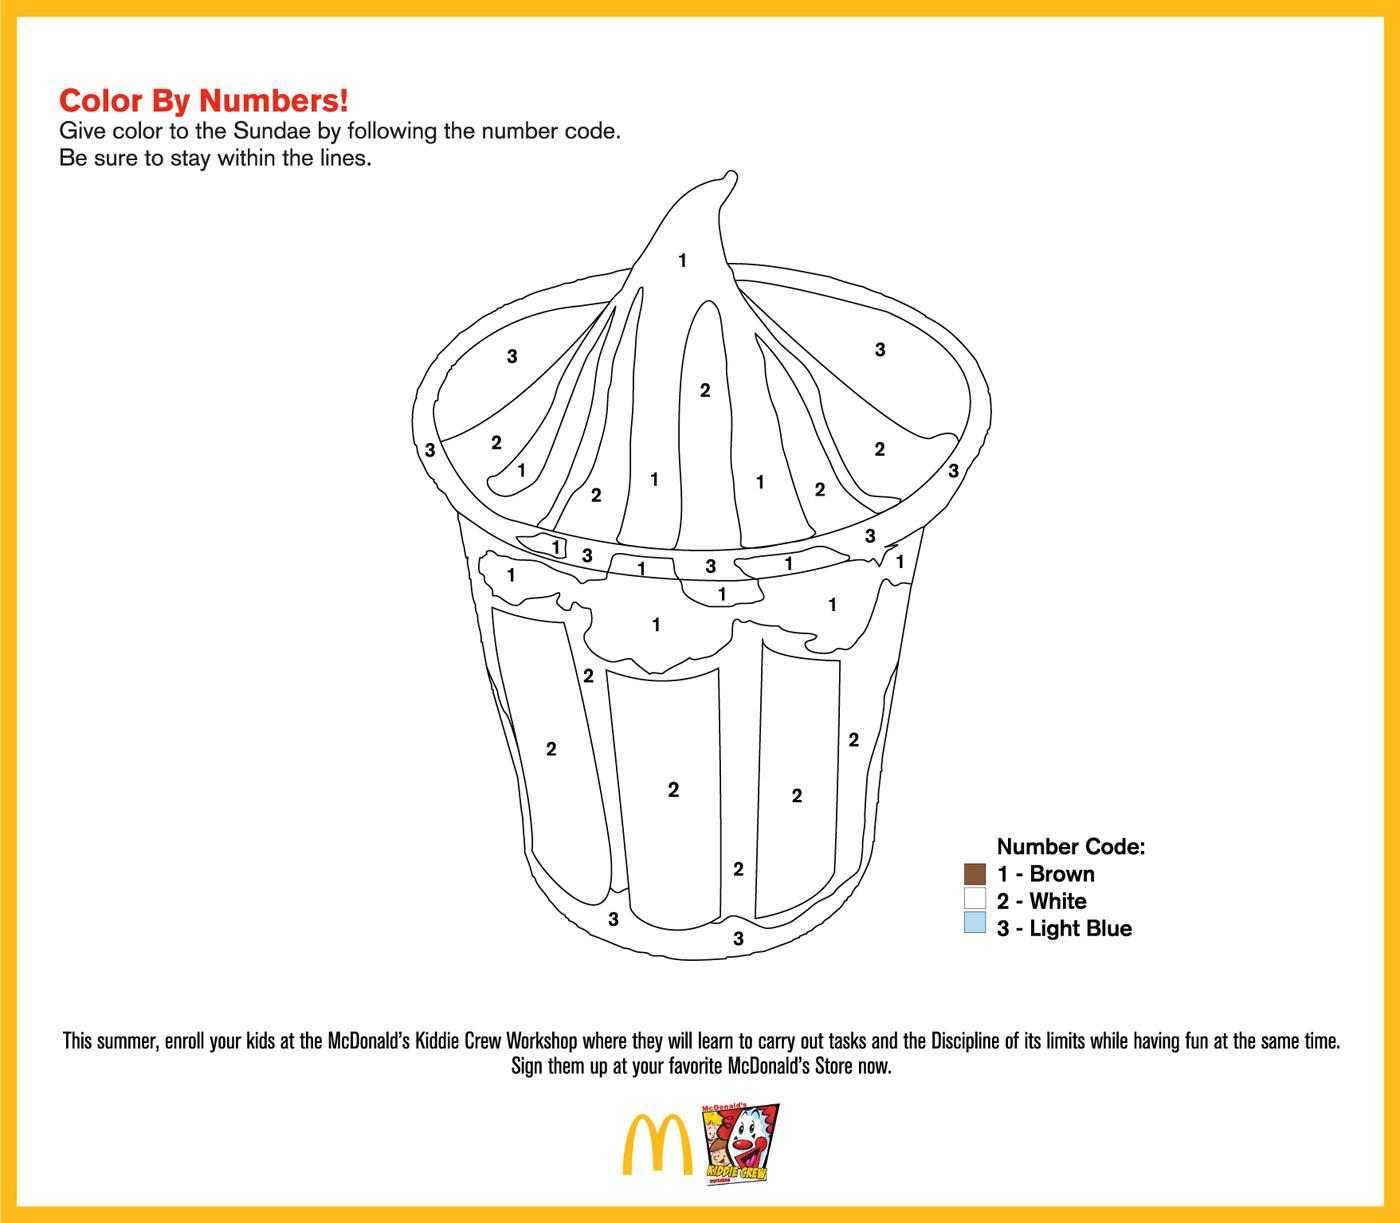 McDonald's Print Ad -  Color by numbers